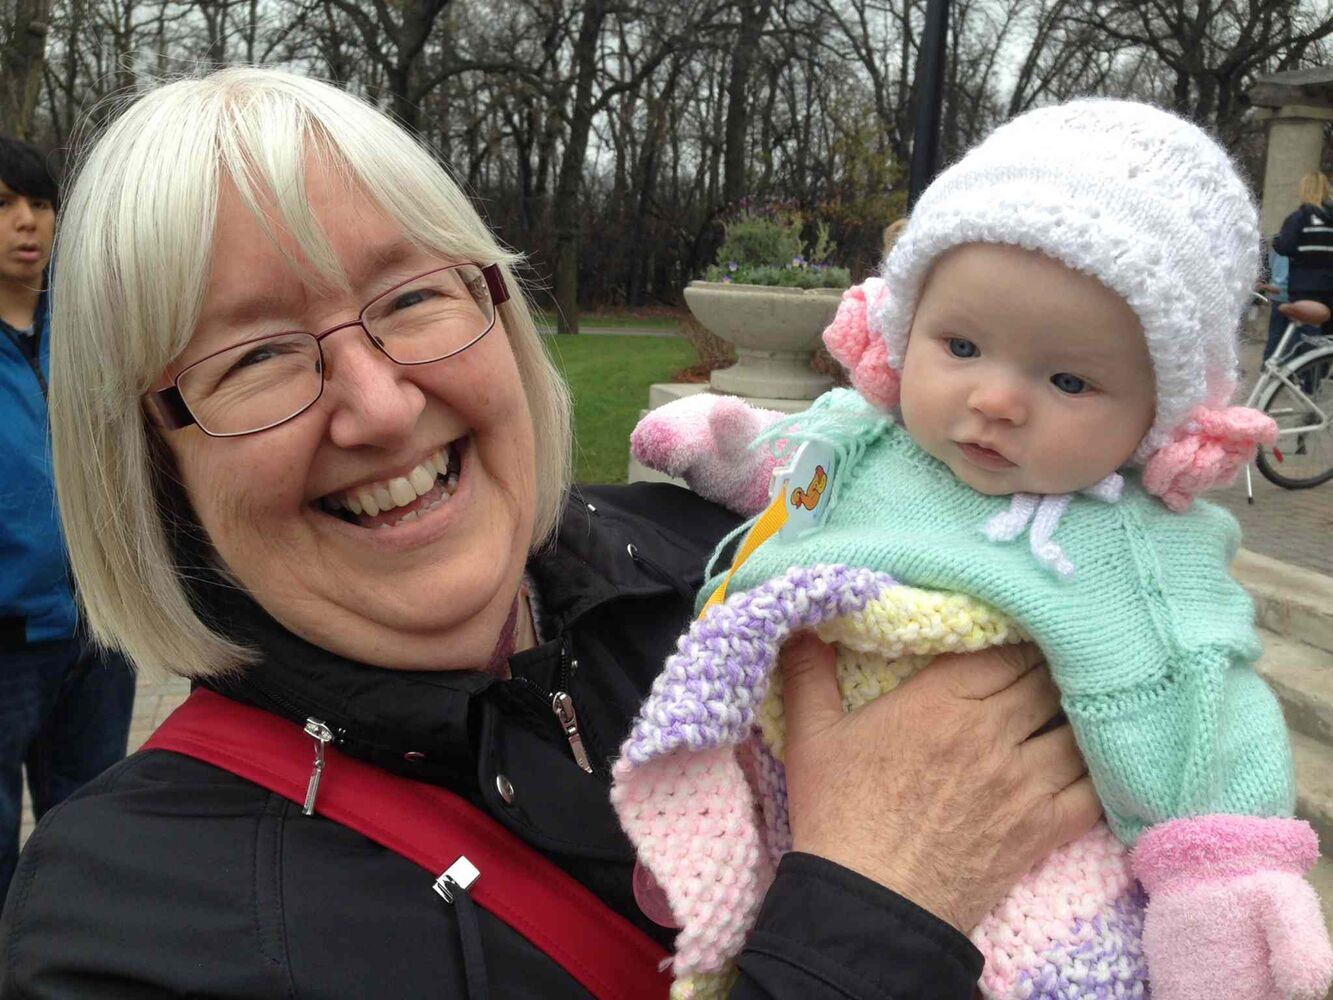 Kay Muir took her baby granddaughter Clara to see the prince in Assiniboine park Wednesday morning.  (GORDON SINCLAIR JR./WINNIPEG FREE PRESS)